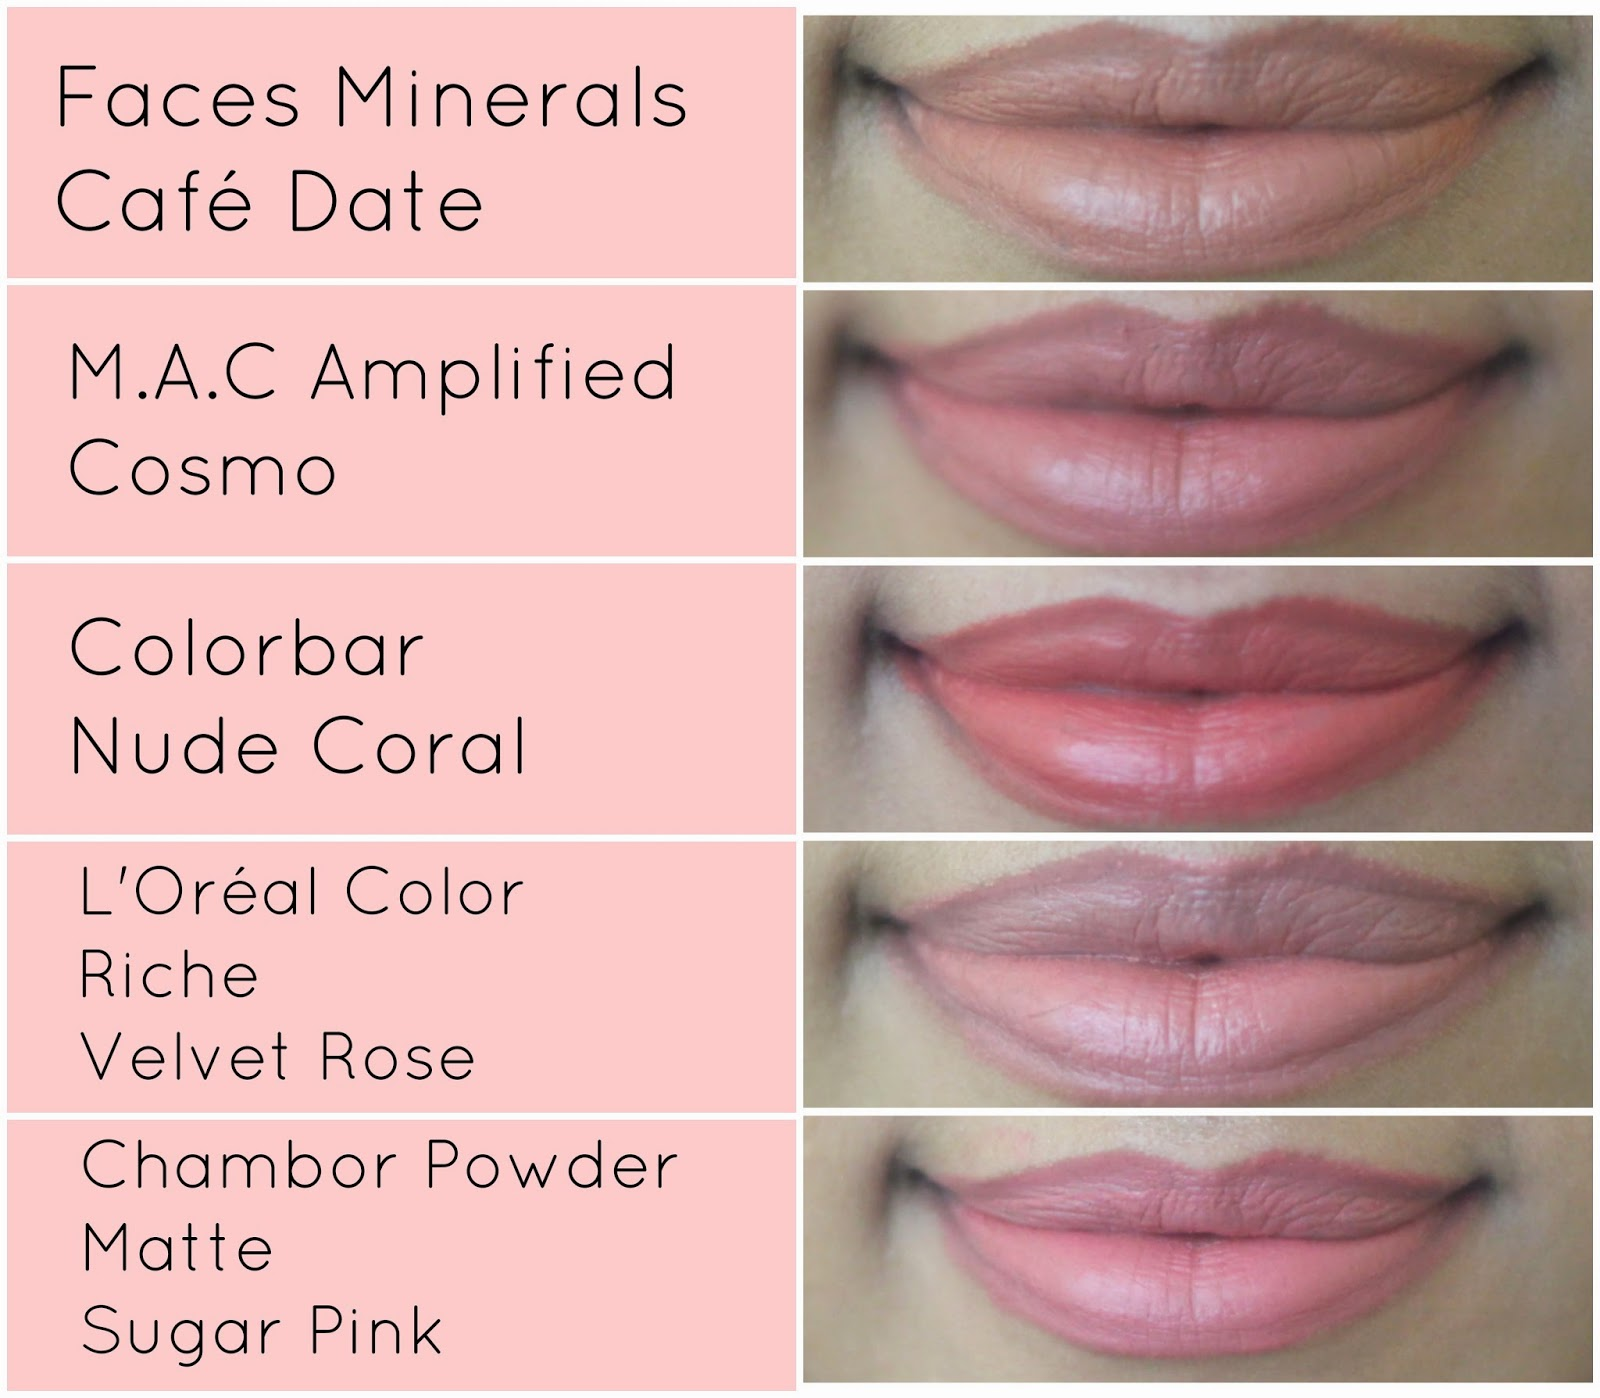 Top 5 Pale Pink Lipsticks For Indian Skin Tone